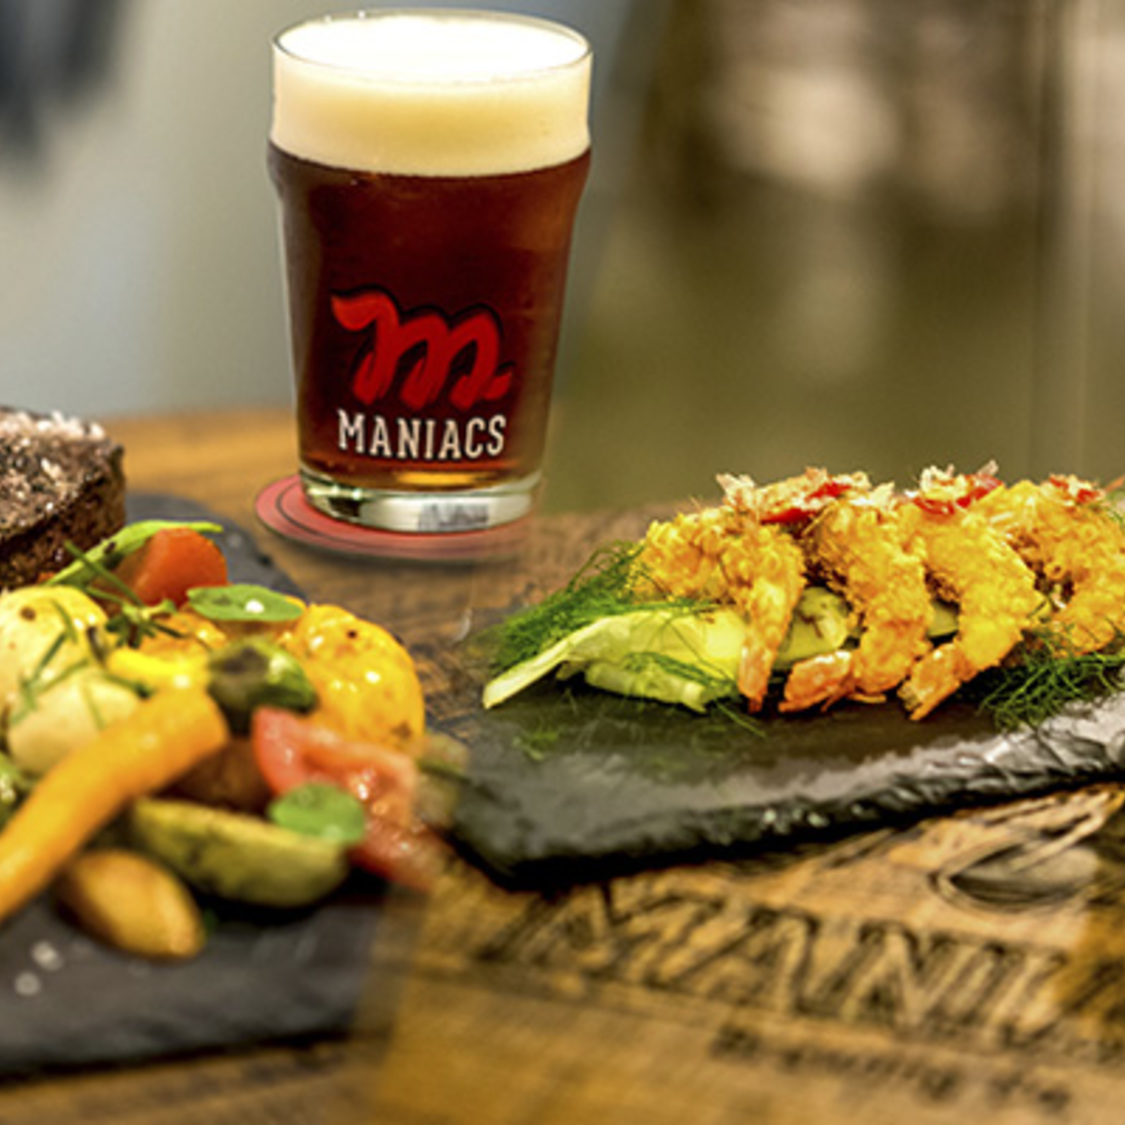 Maniacs Brewing Co